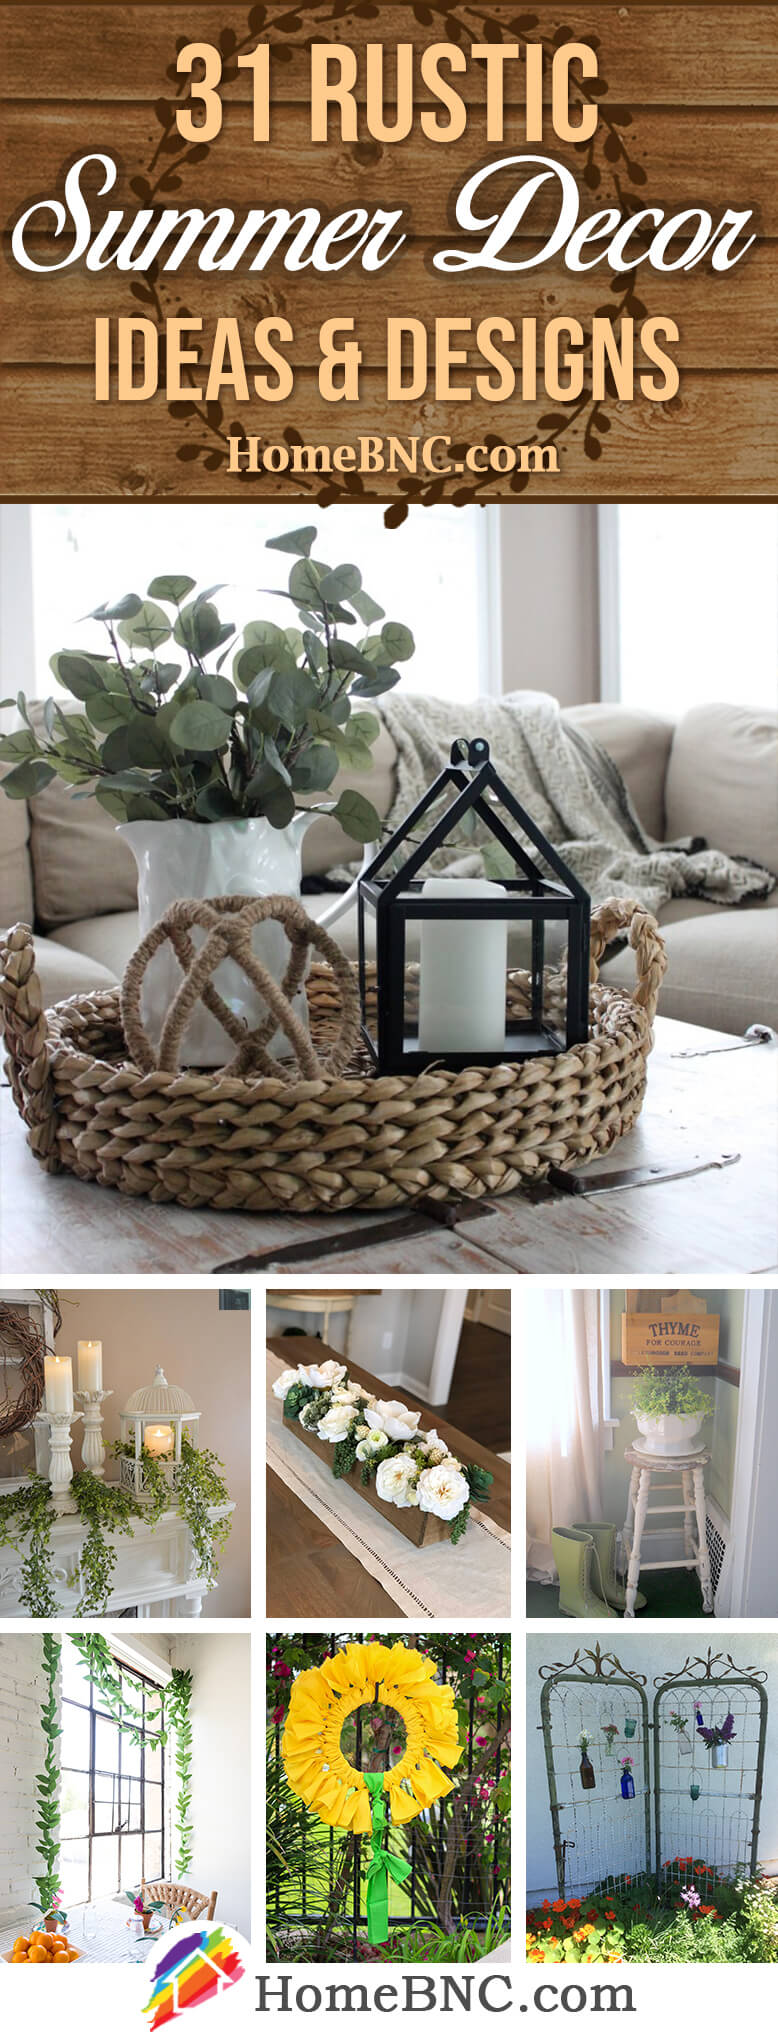 Best Rustic Home Decor Ideas for Summer